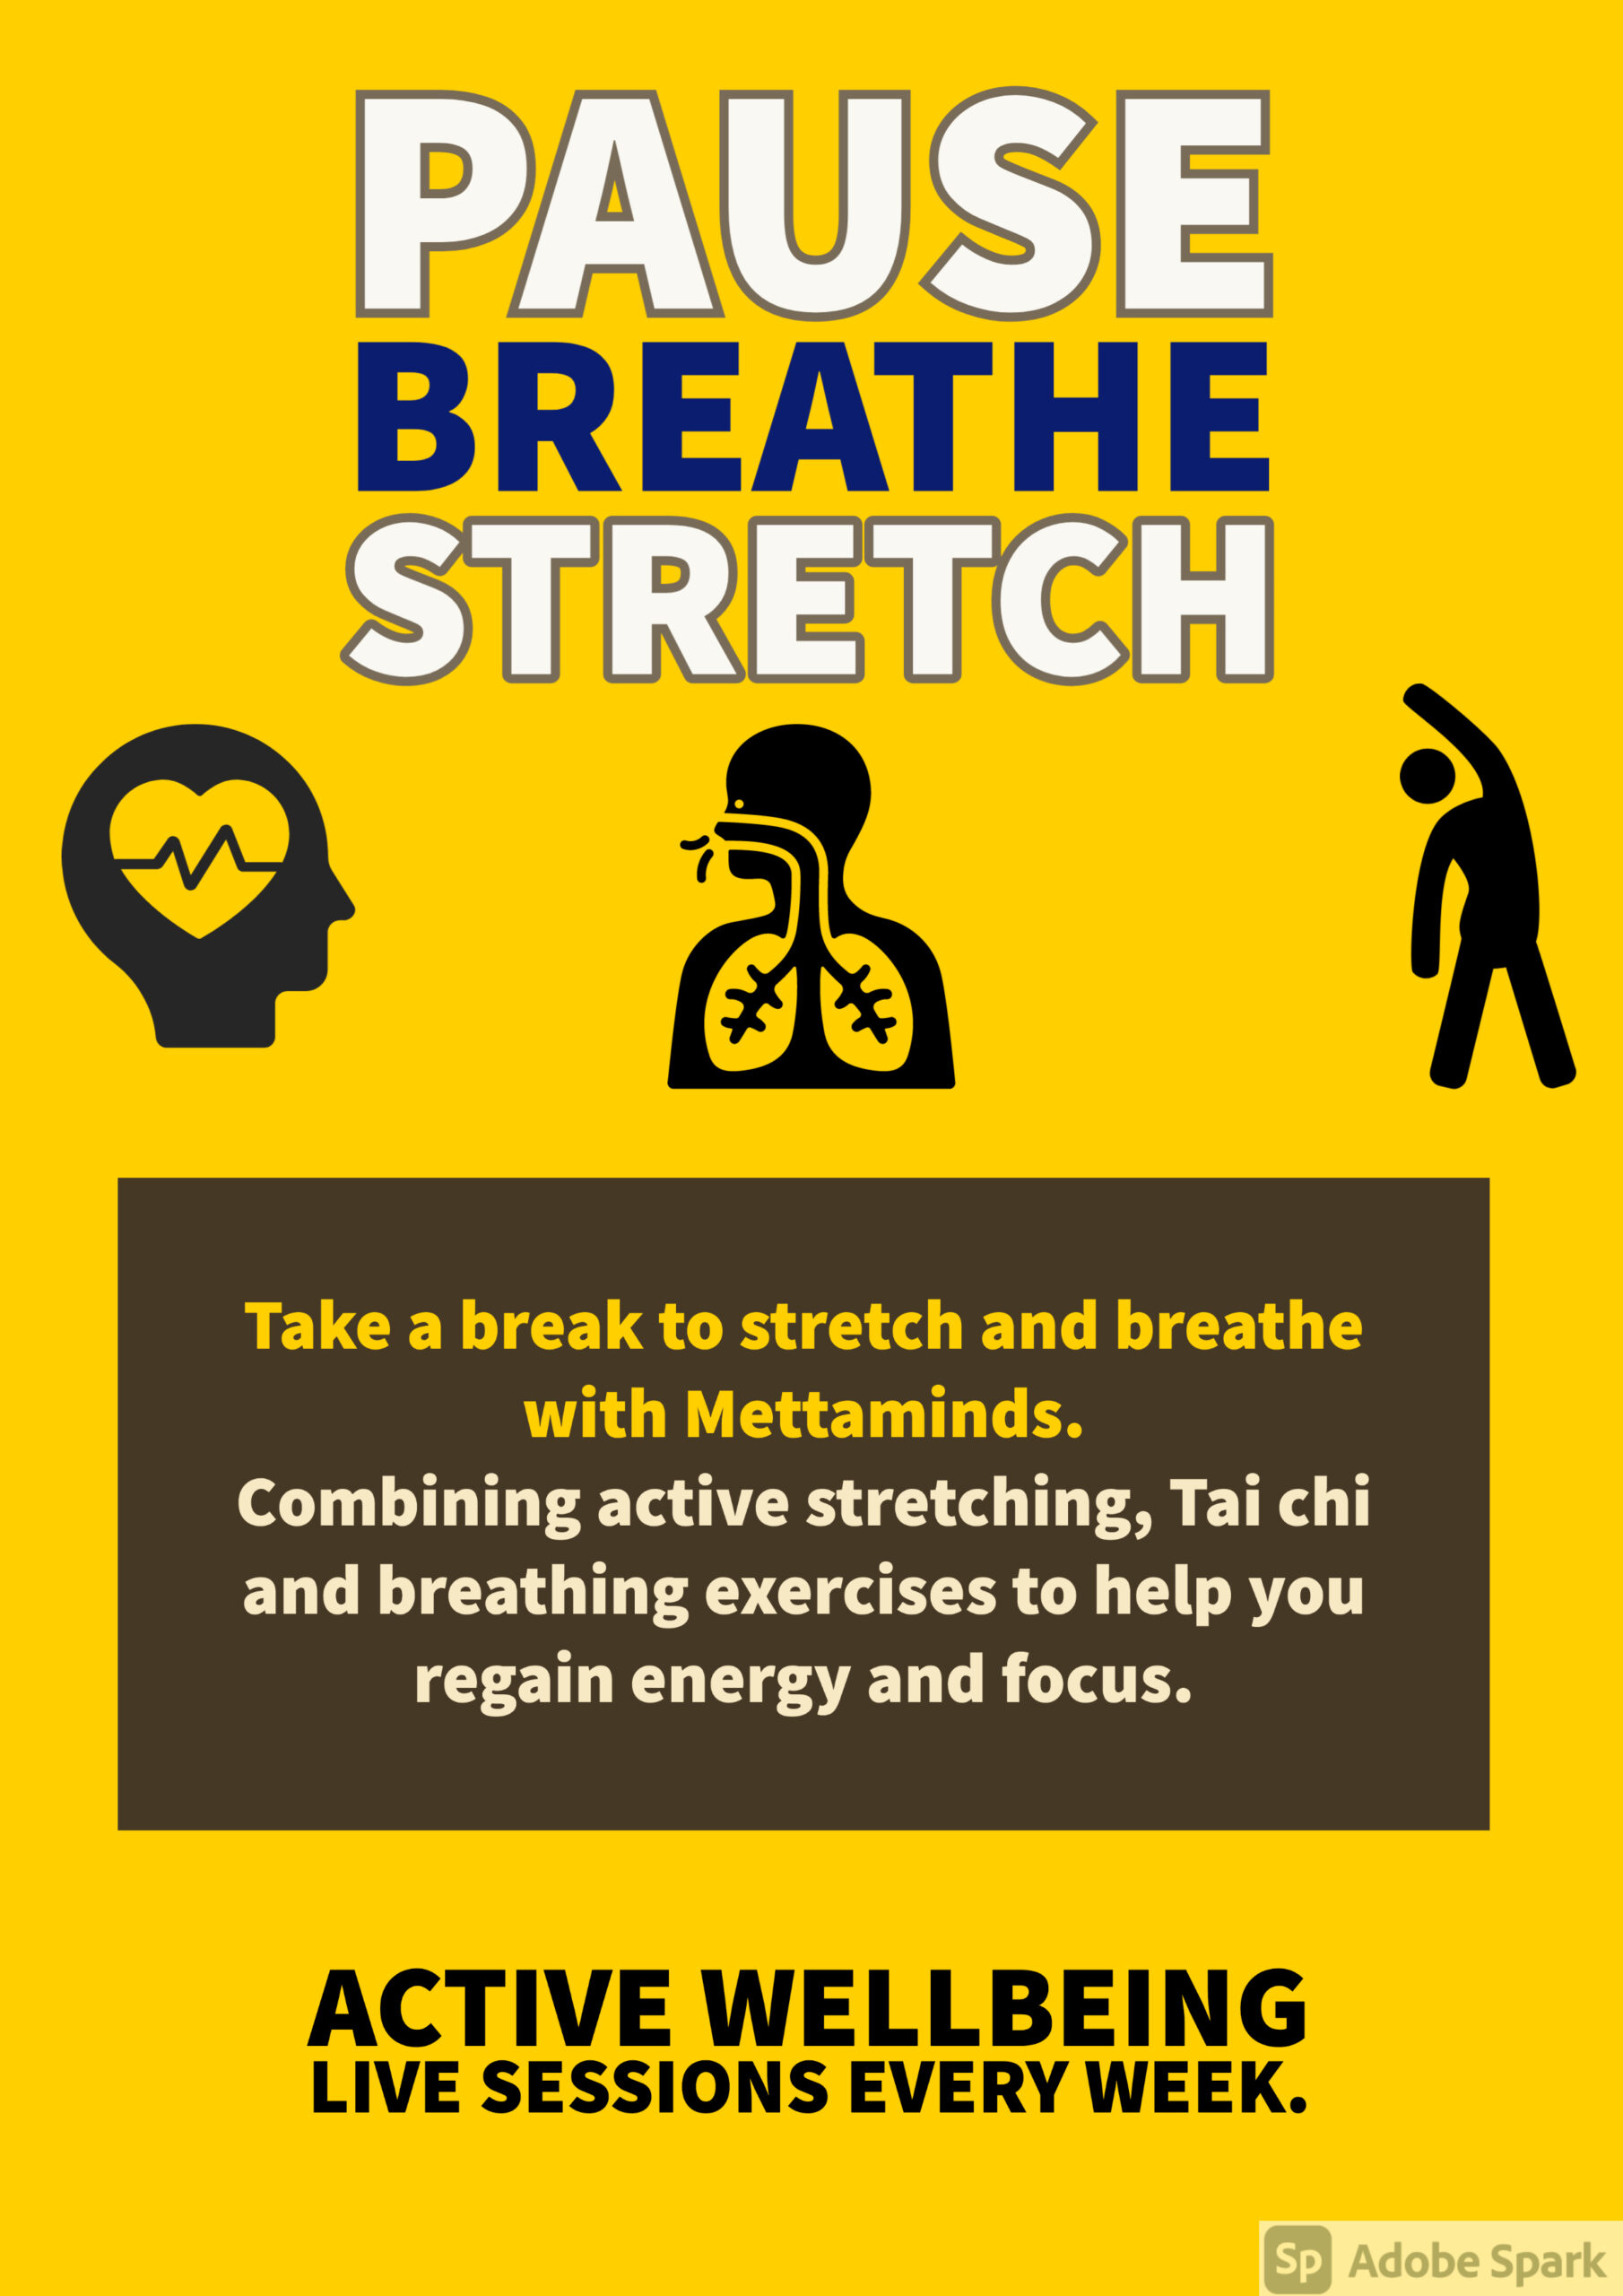 Pause Breathe and Stretch